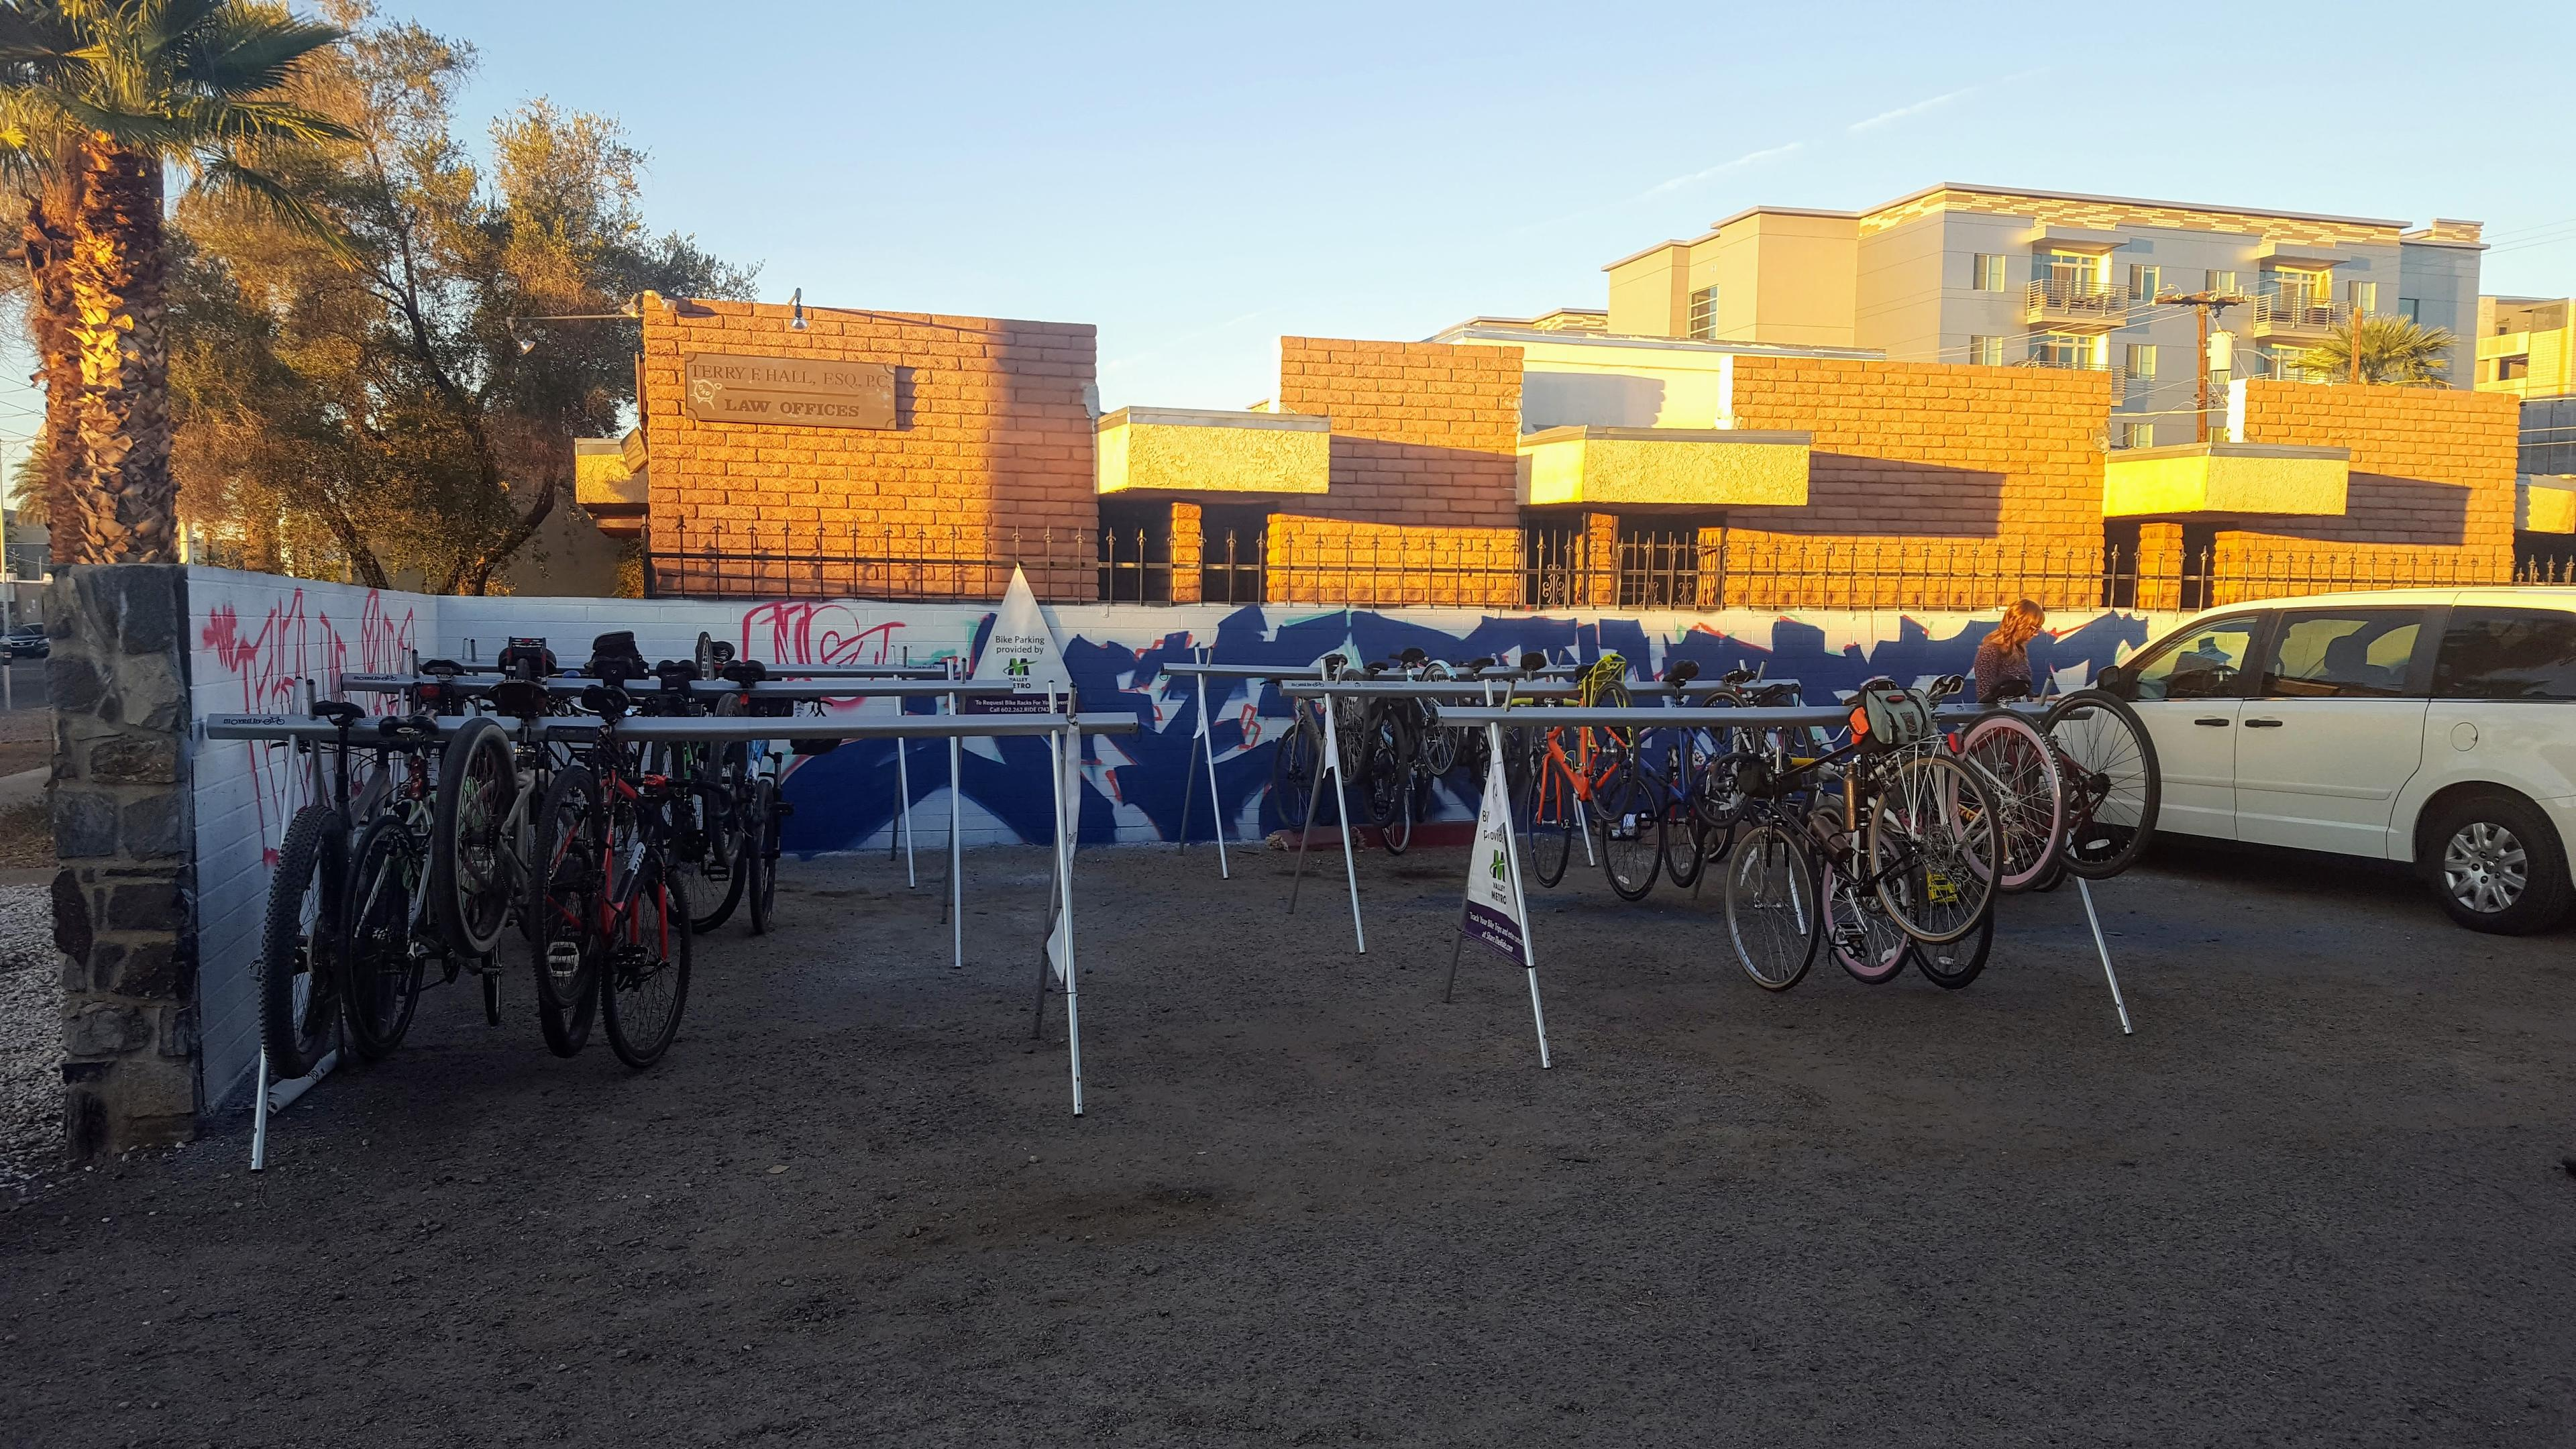 parking lot with bike valet